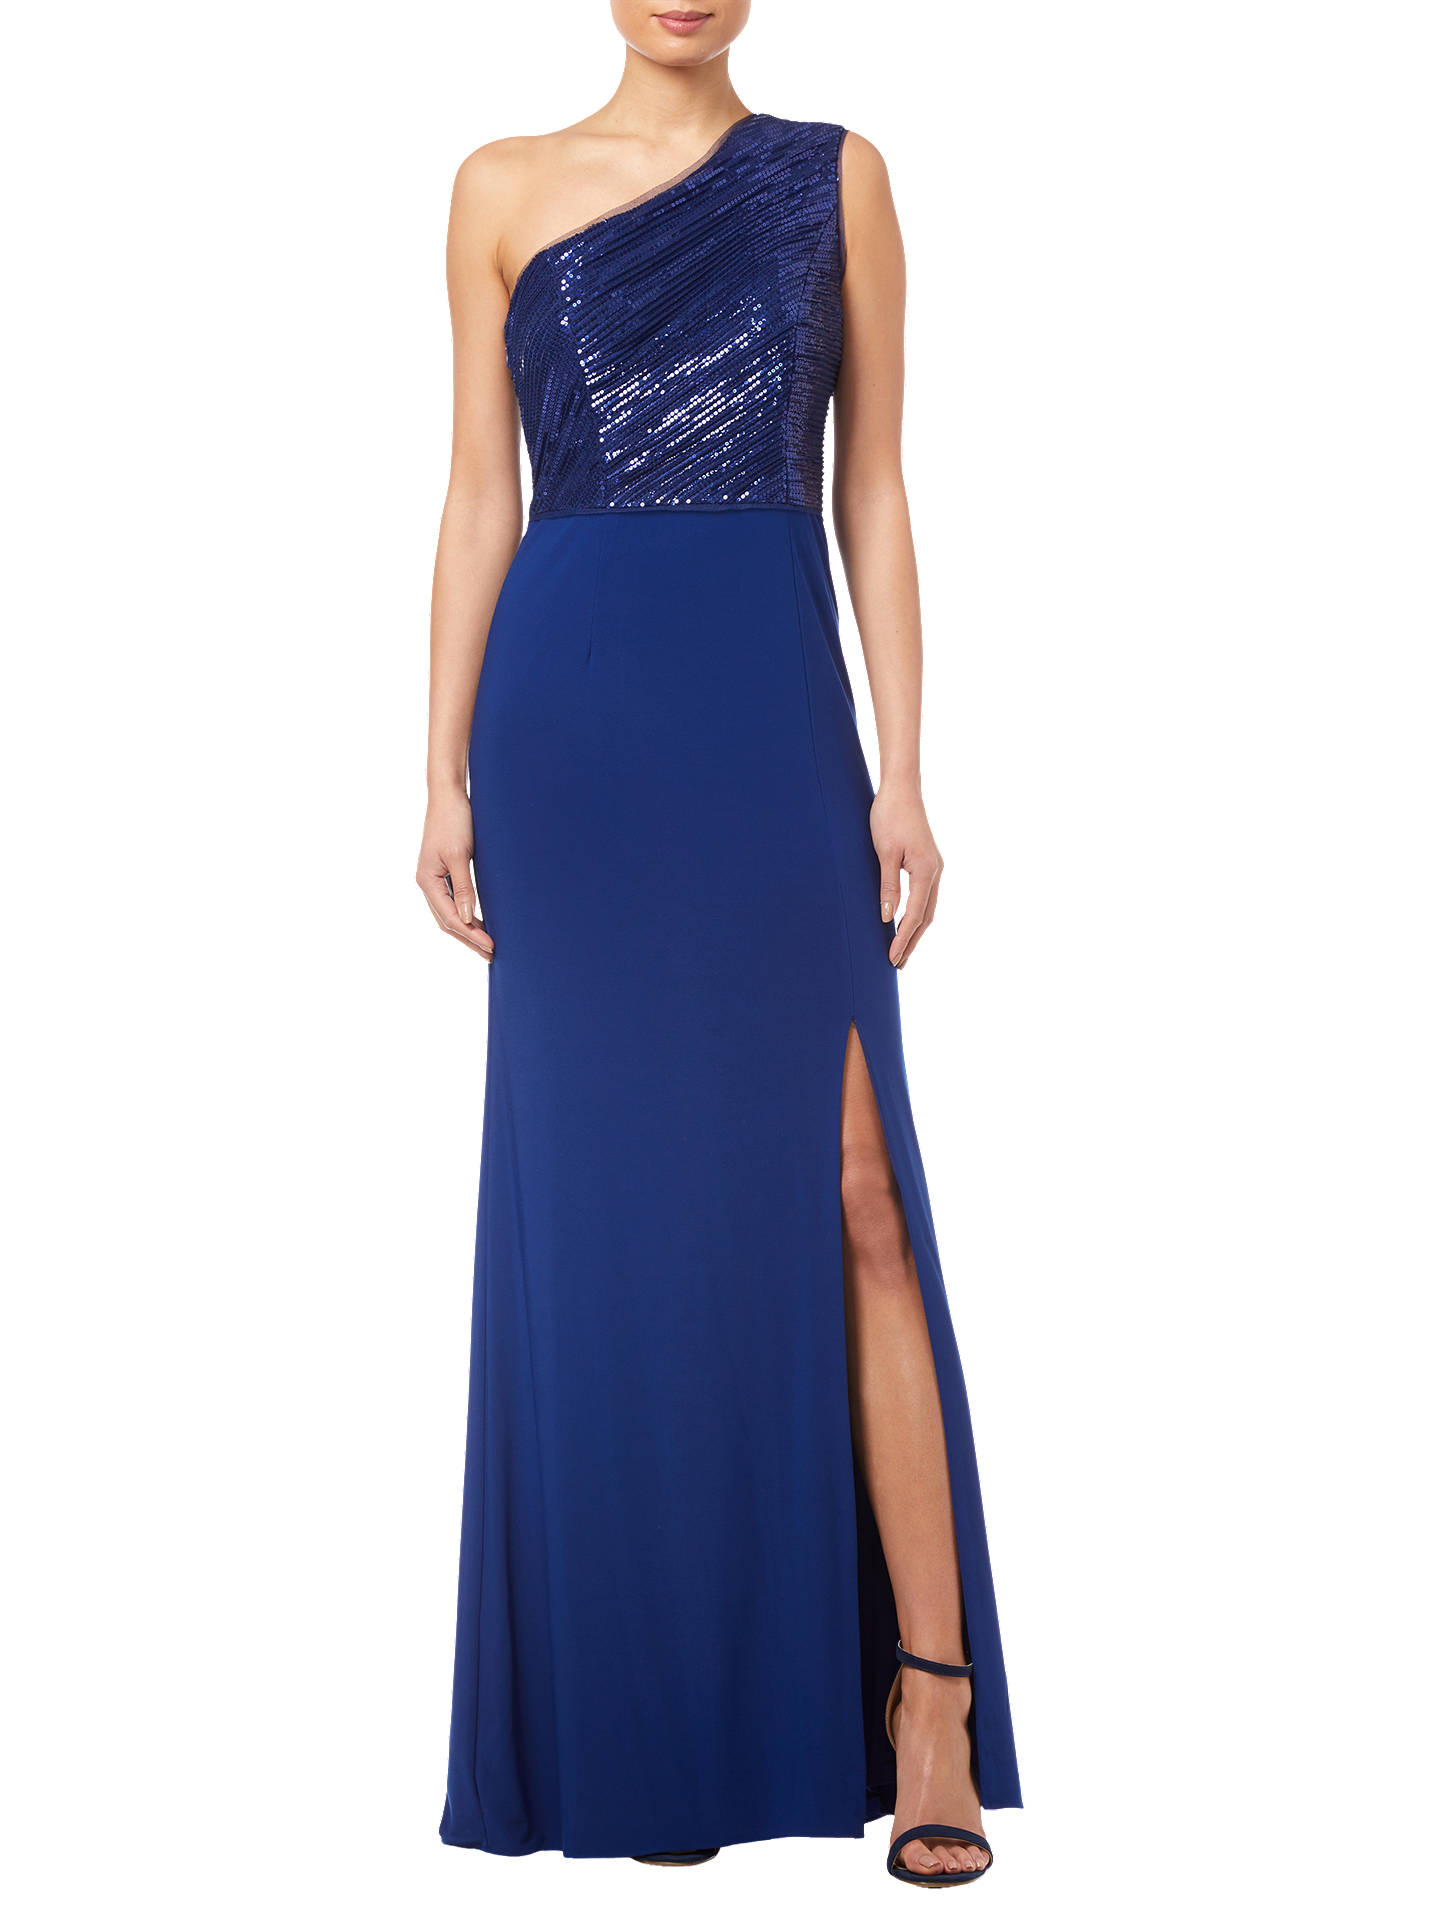 Buy Adrianna Papell Sequin Bodice One Shoulder Gown, Blue Violet, 6 Online at johnlewis.com